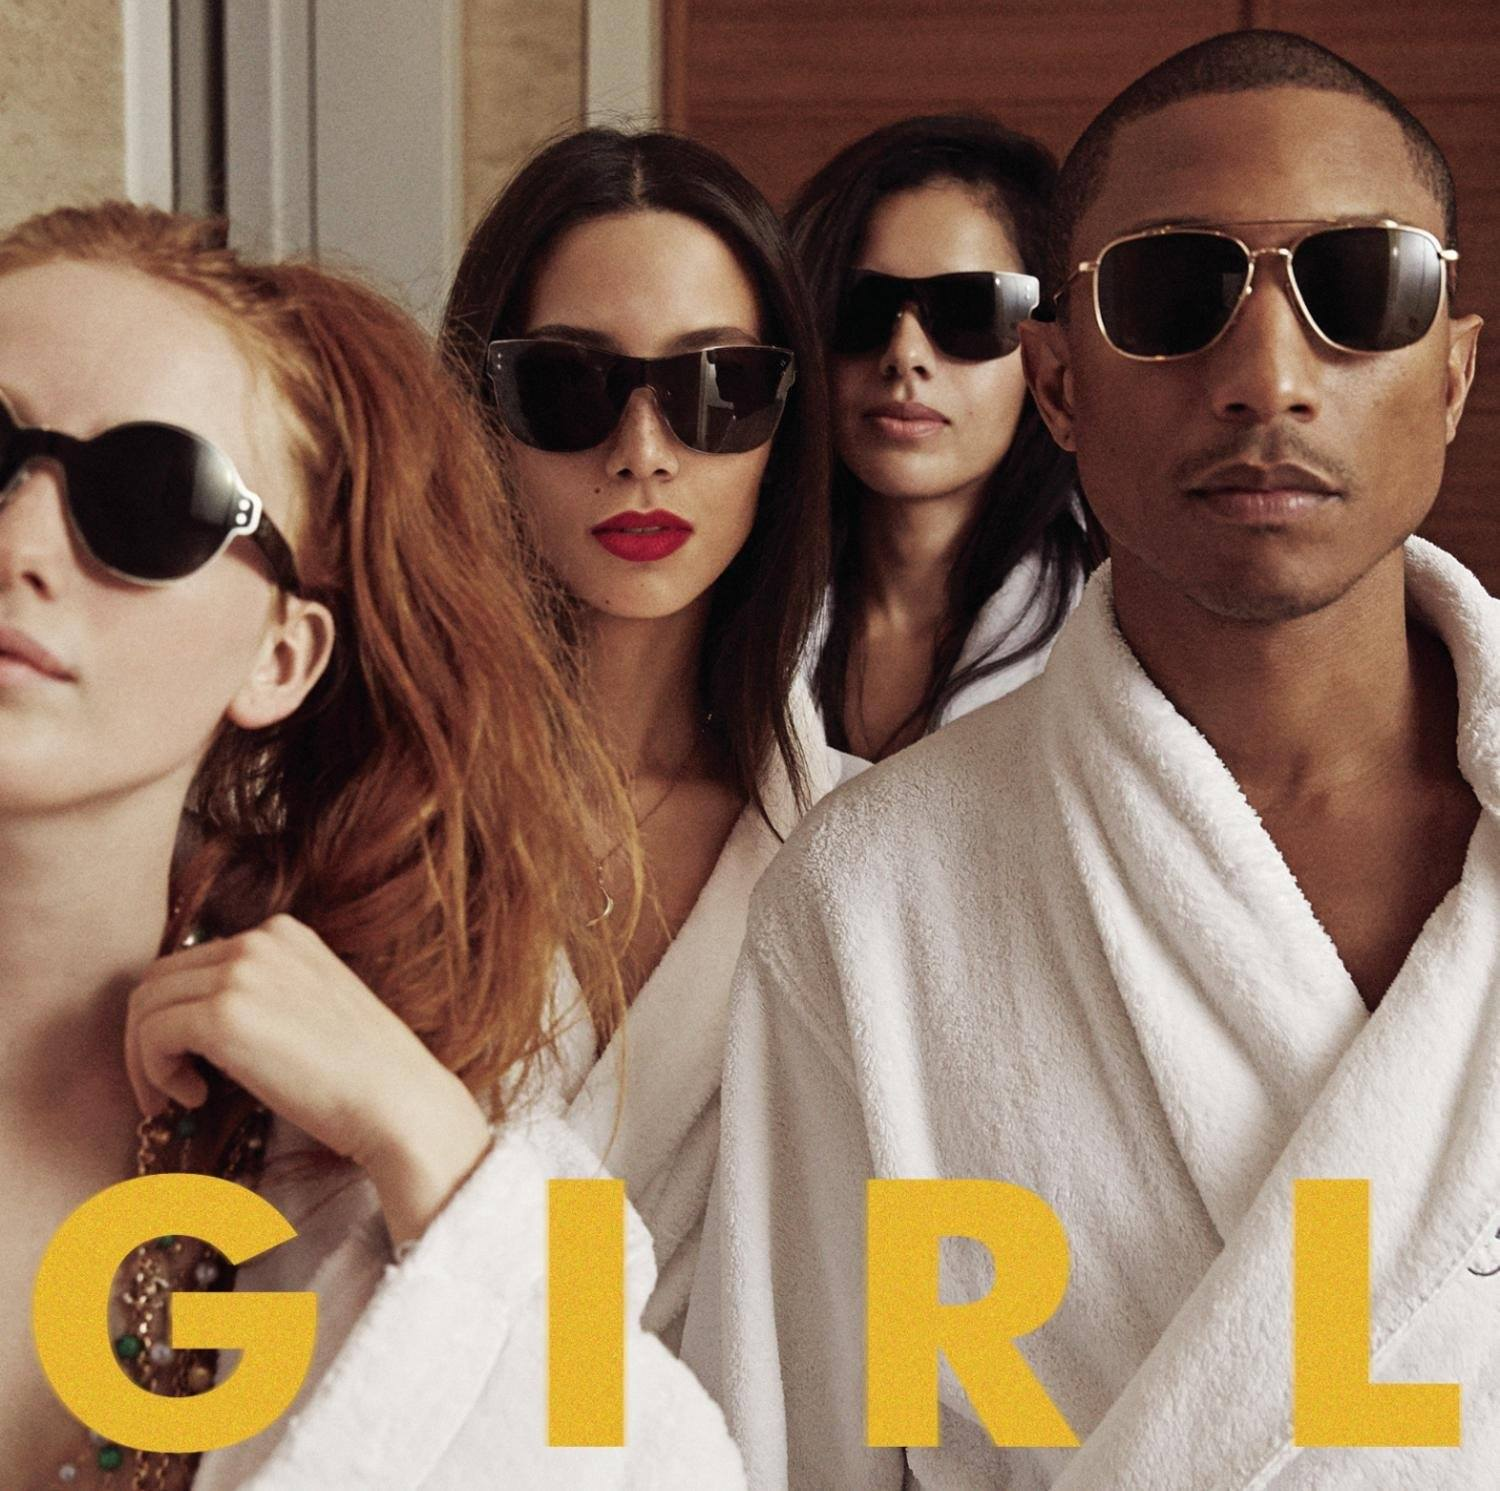 O álbum GIRL, de Pharrell Williams